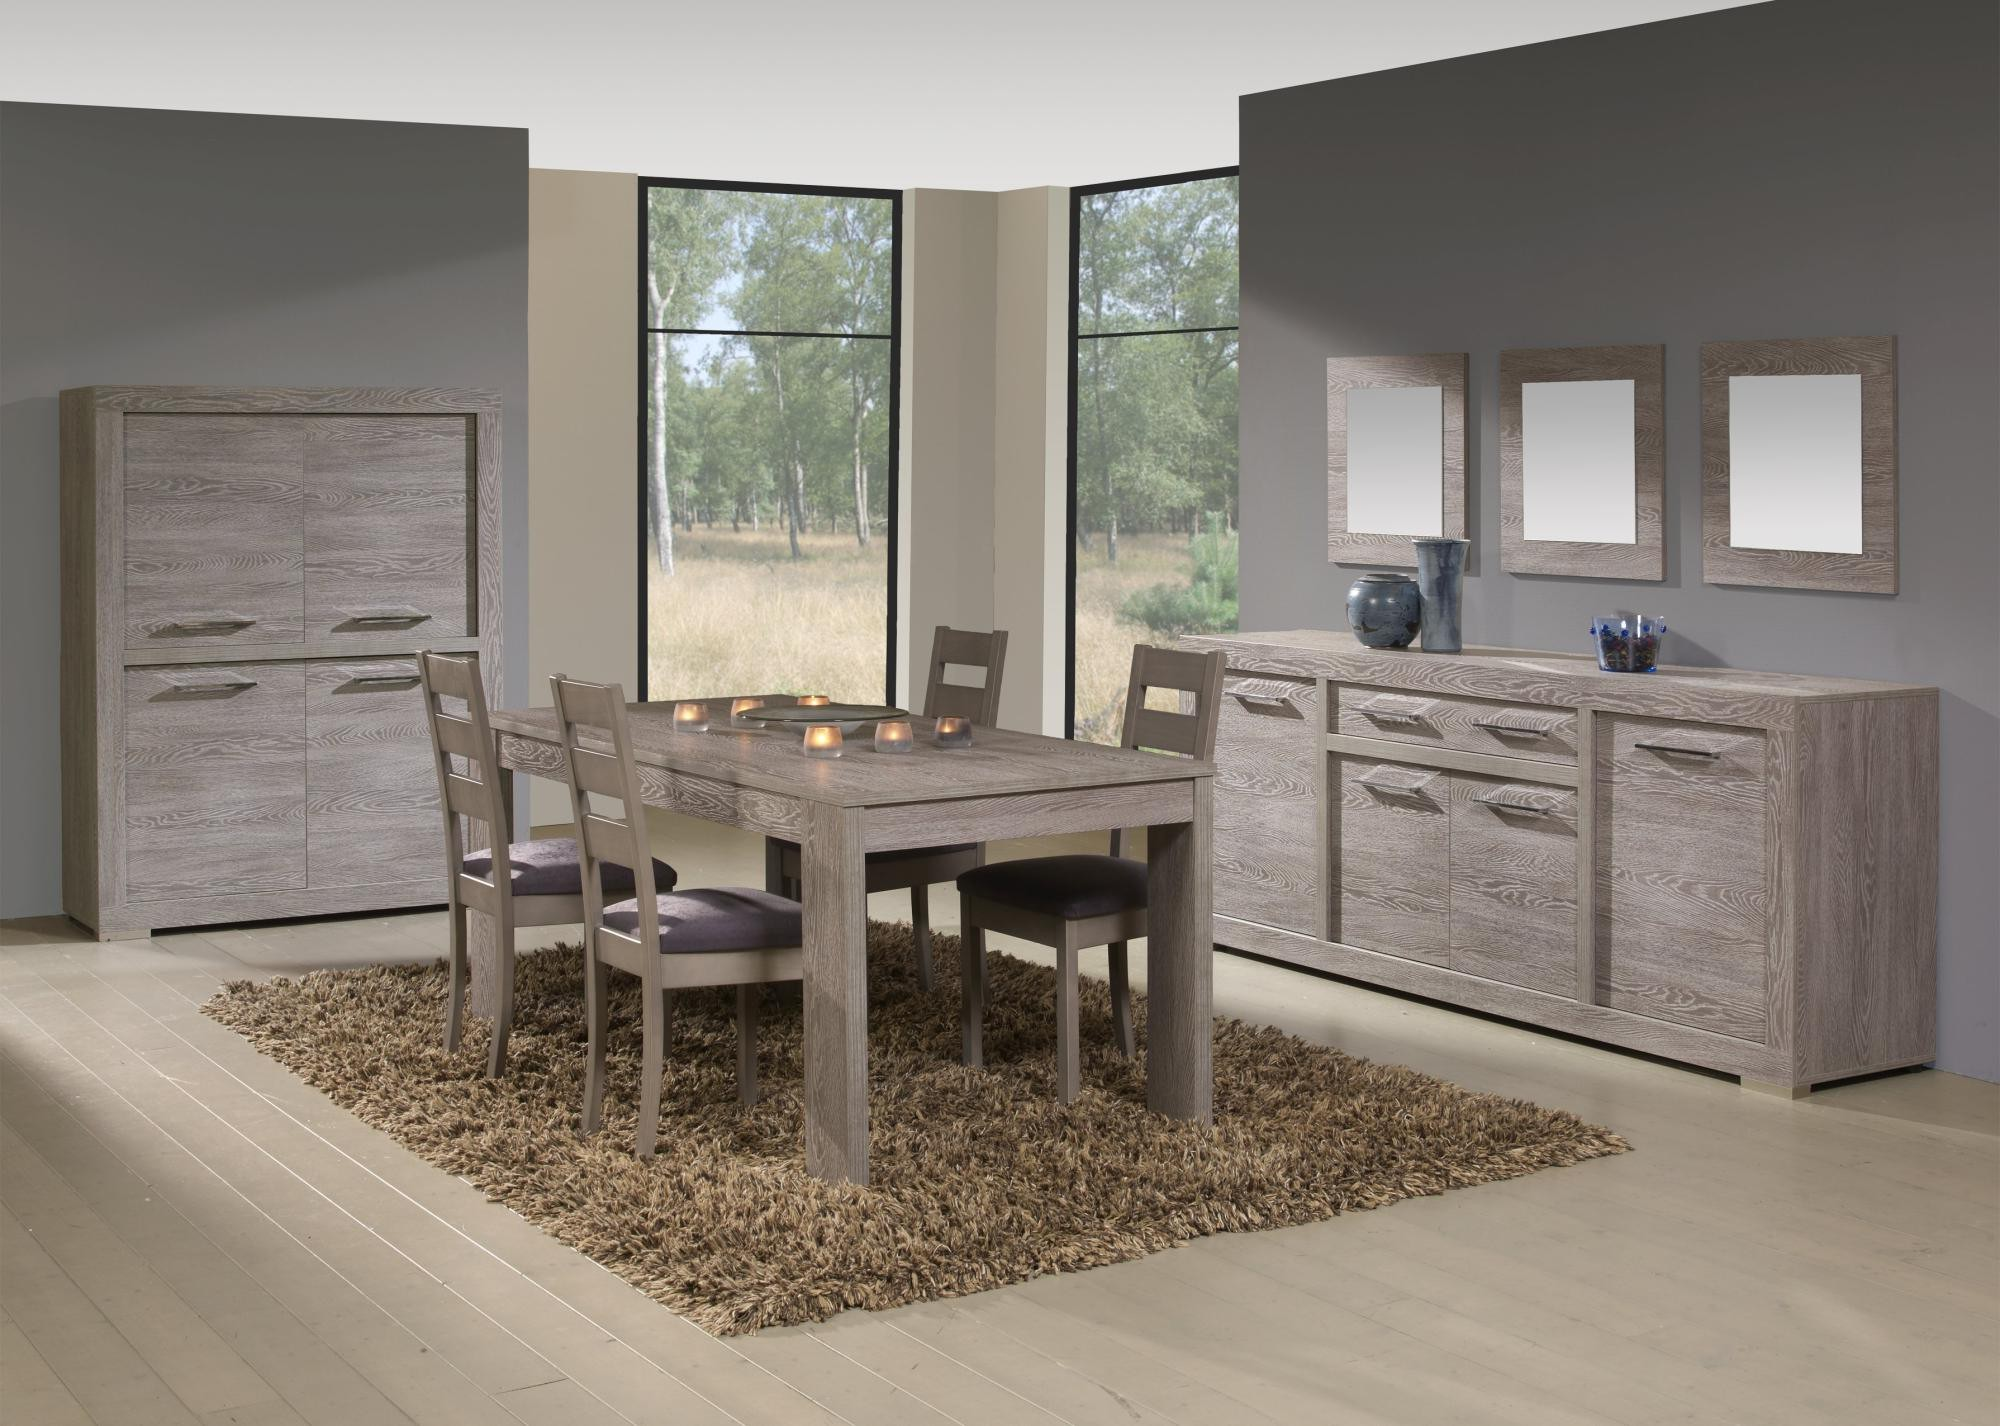 Table chaises salle manger design de maison for Table salle a manger jackson